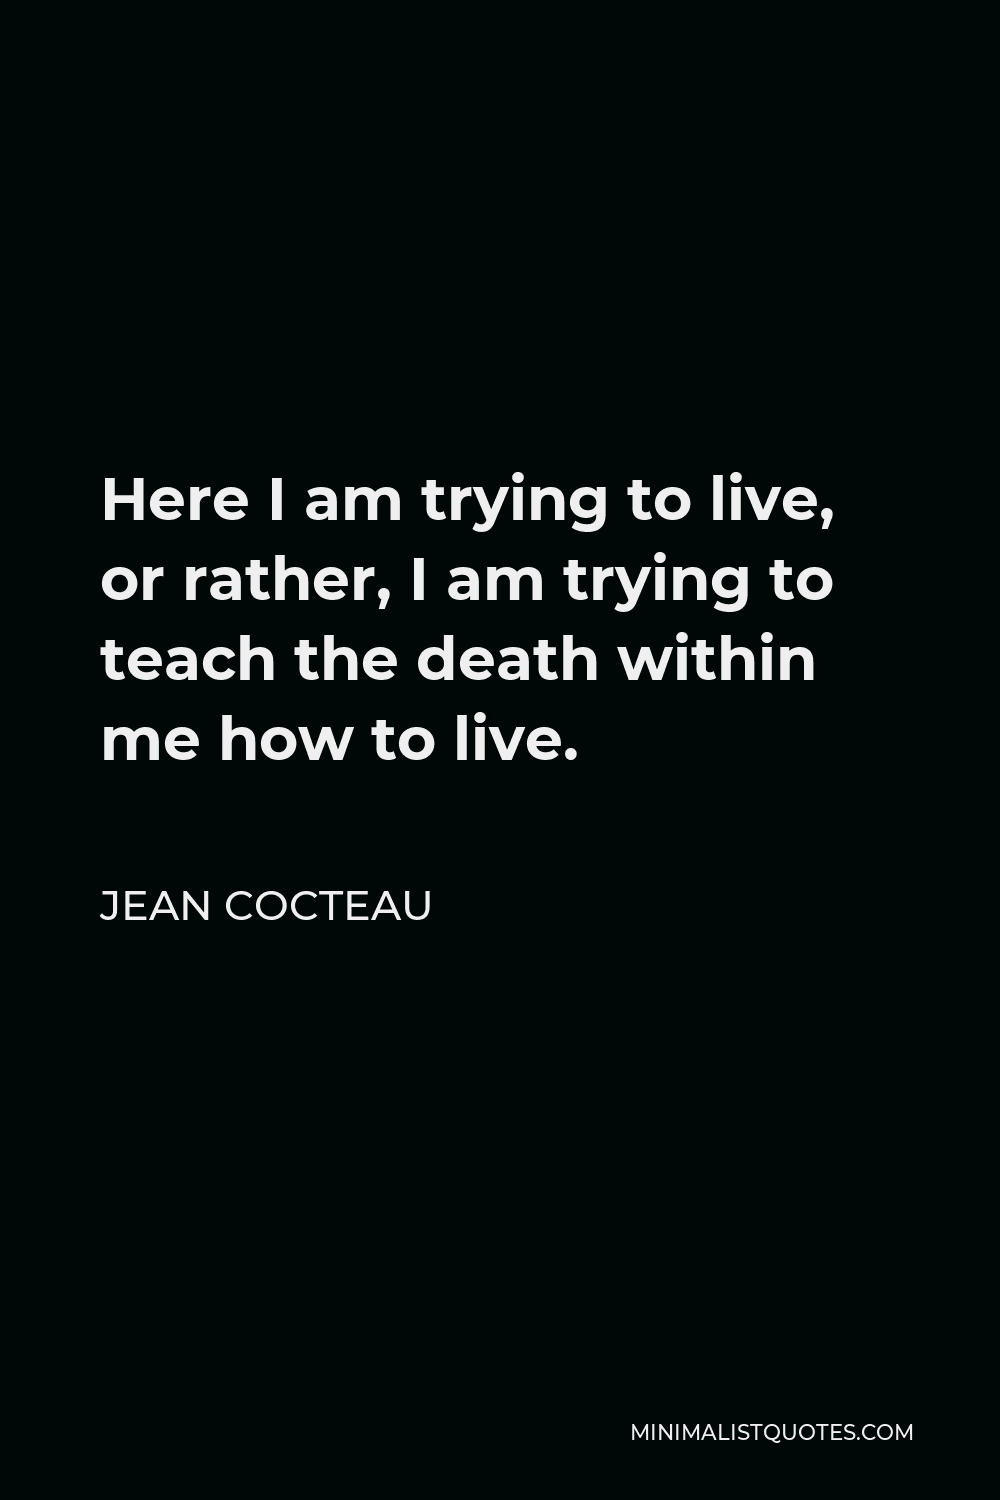 Jean Cocteau Quote - Here I am trying to live, or rather, I am trying to teach the death within me how to live.